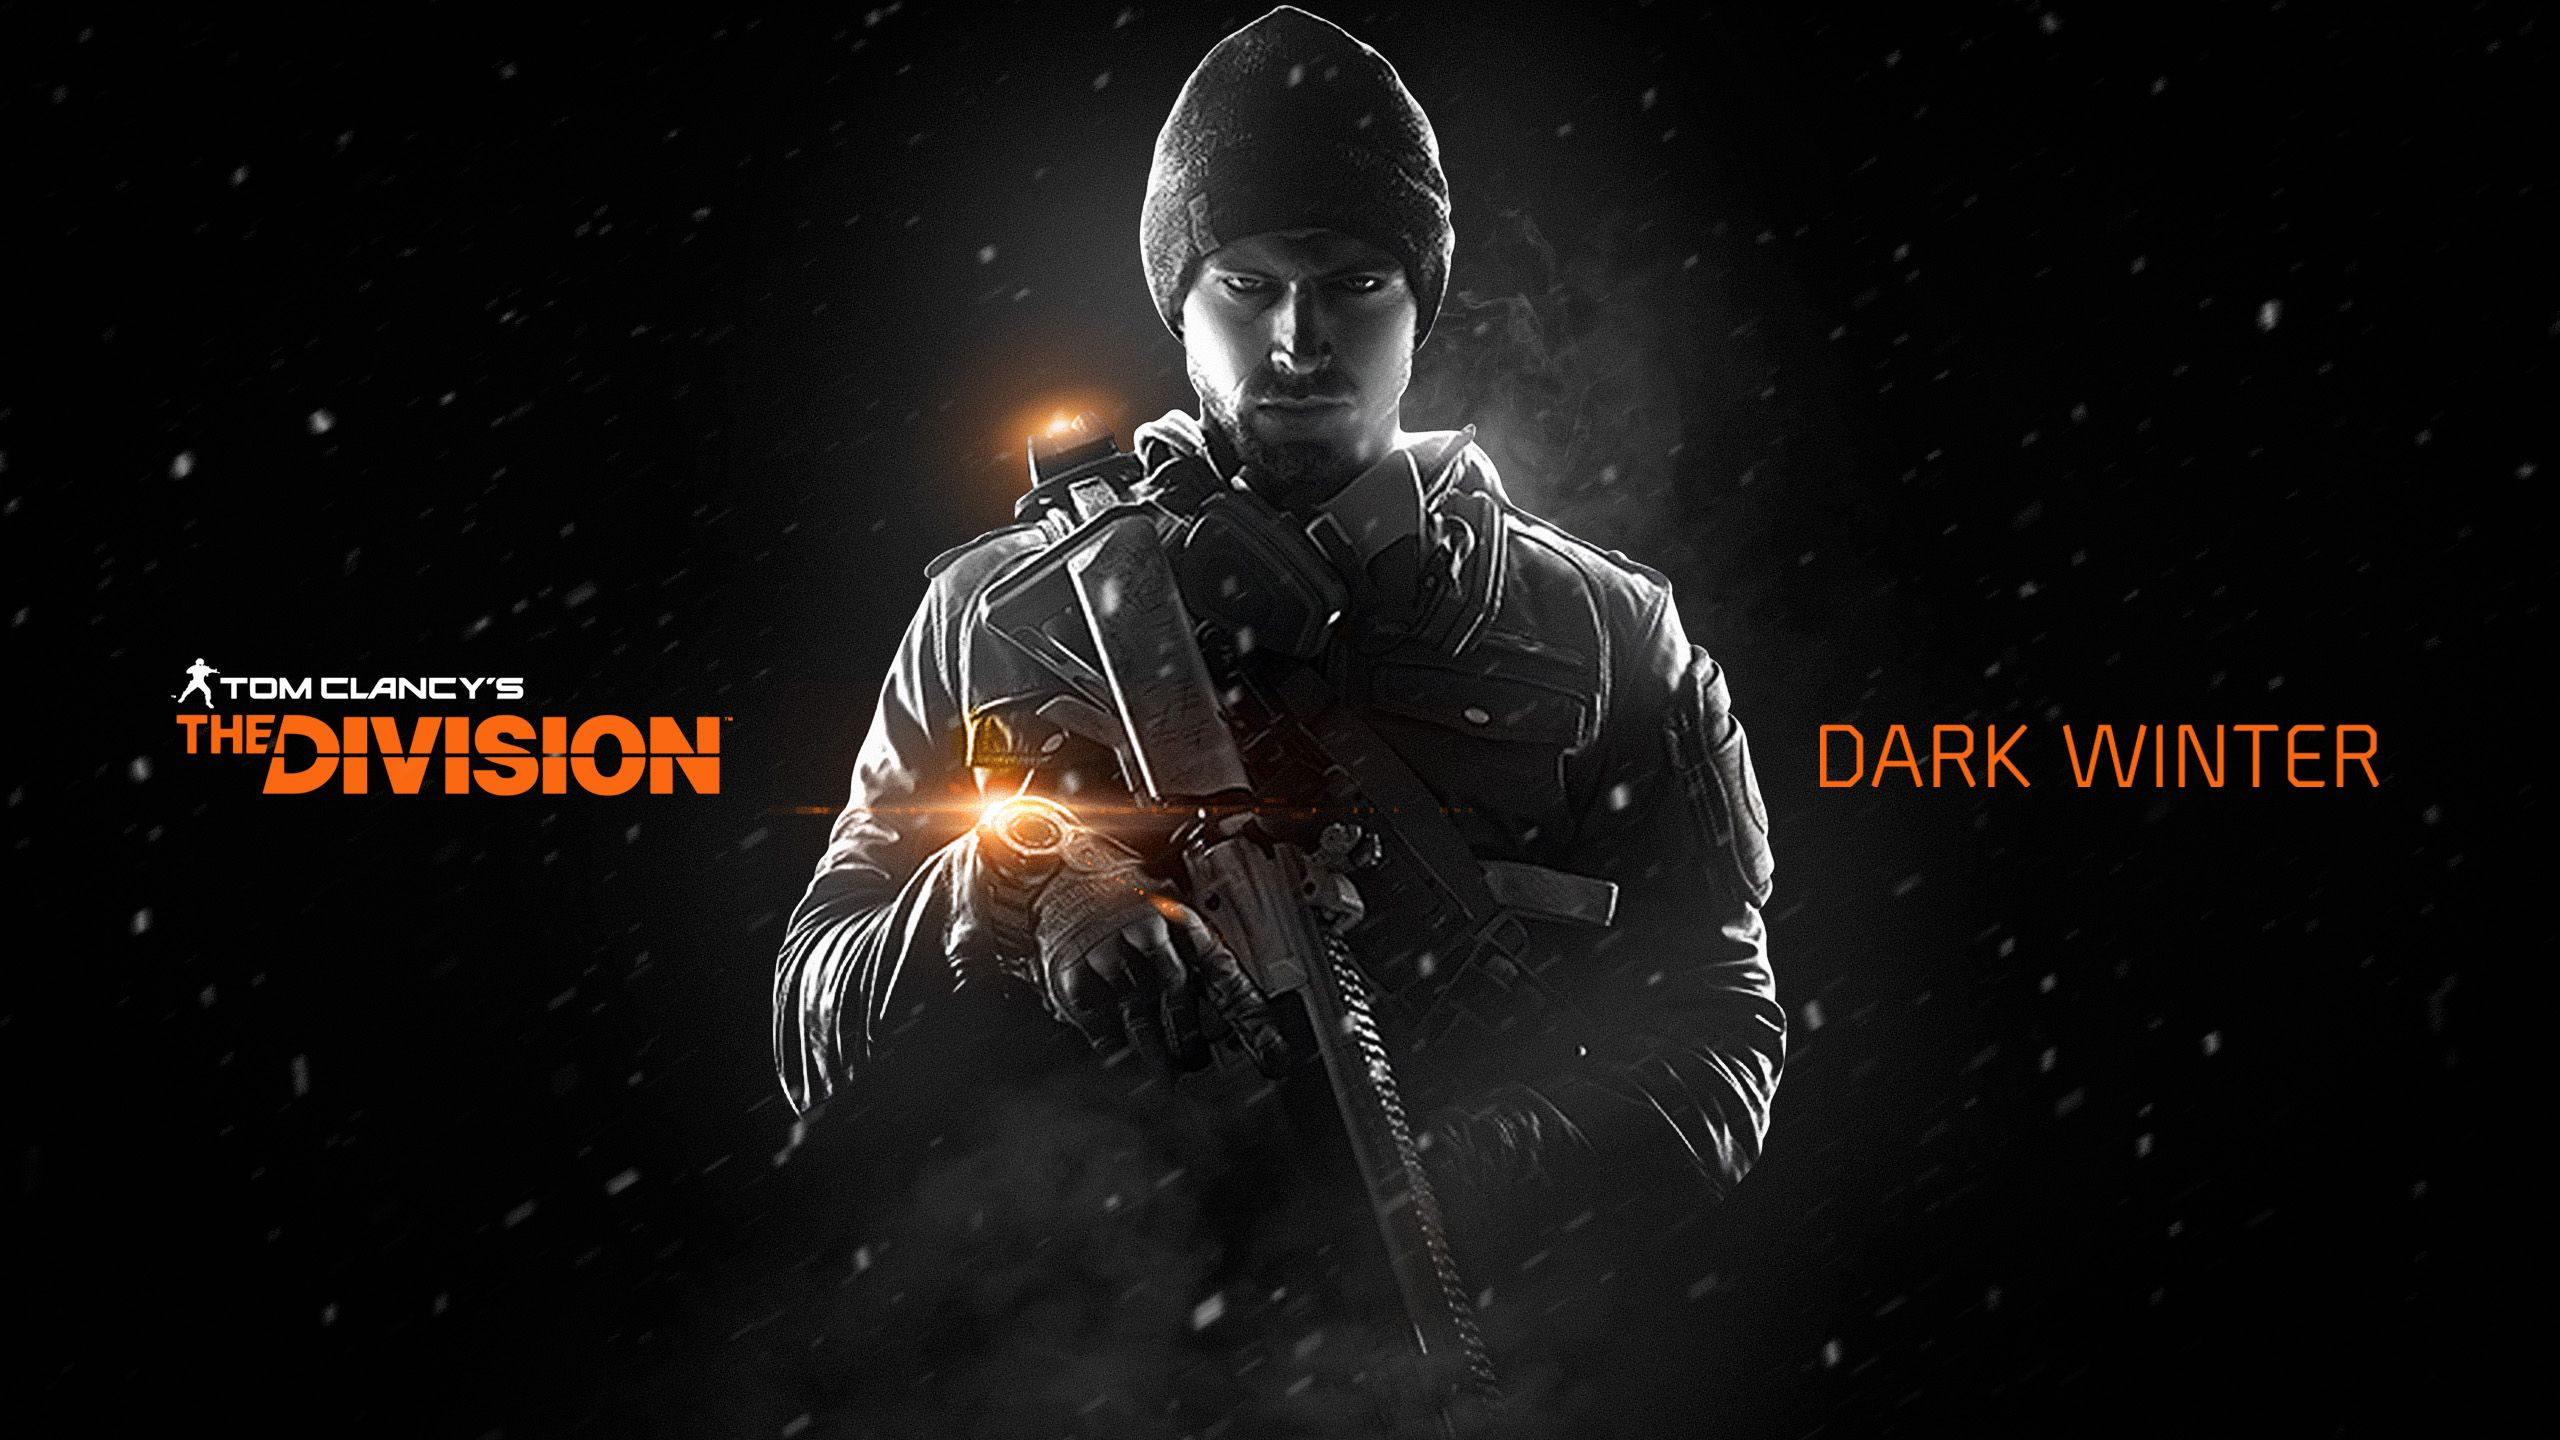 The Division 4K Wallpapers - Top Free The Division 4K Backgrounds